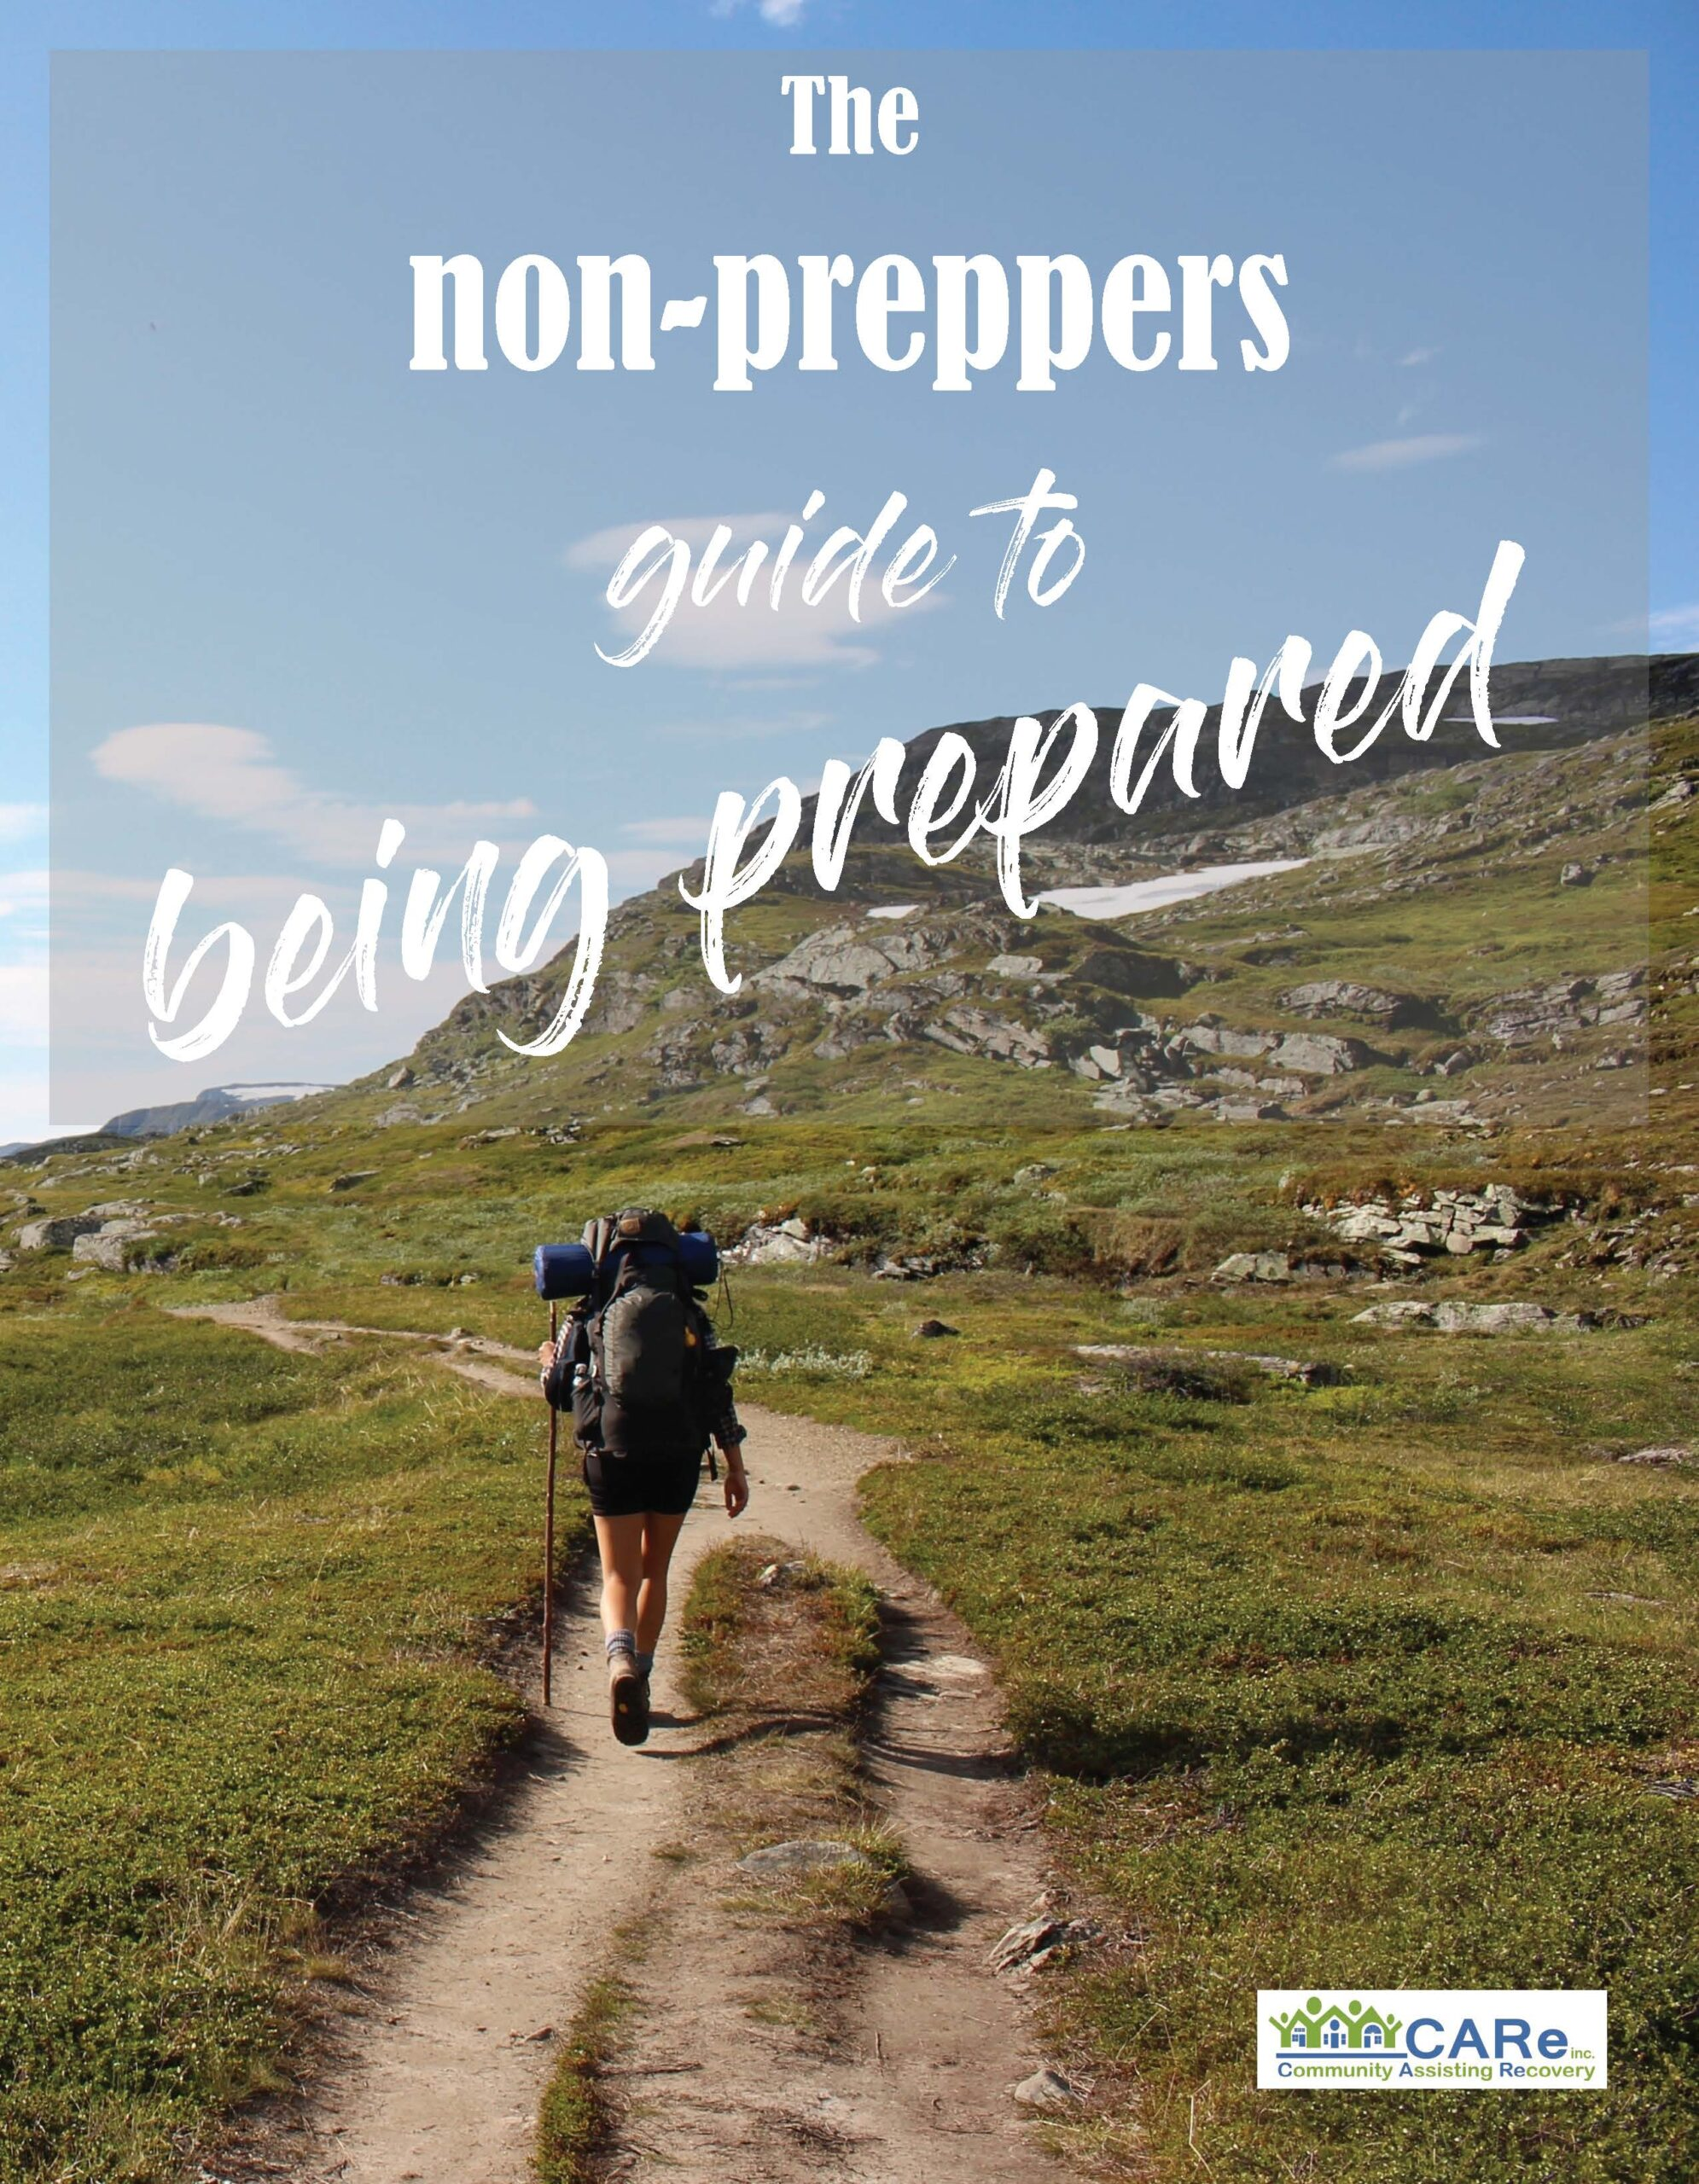 Disaster Preparedness for Non-Preppers by Community Assisting Recovery